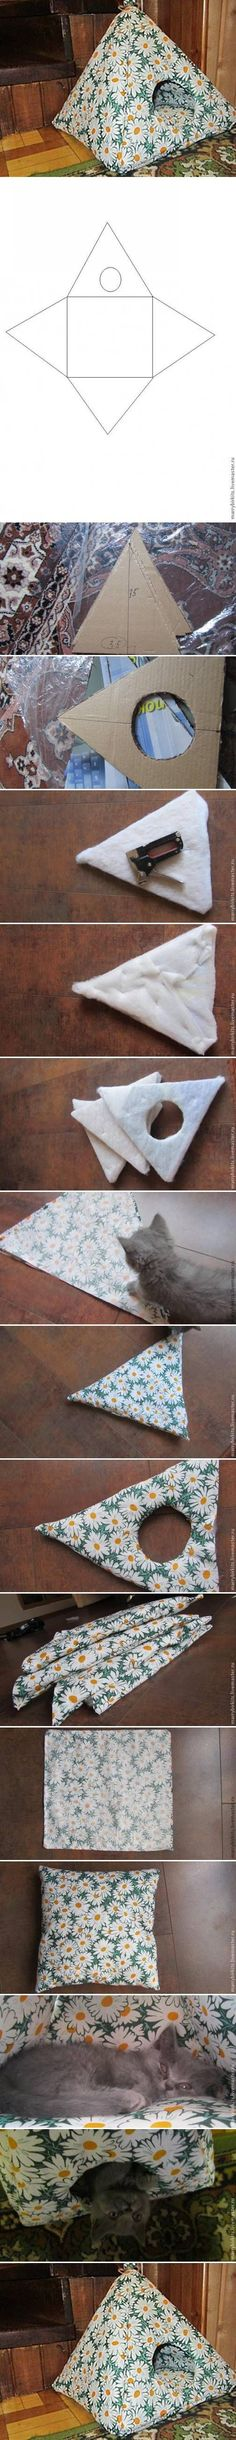 DIY House for Cat or small dog or make it small enough for any of your pet rodents. Love rats and all! #diycattentlove